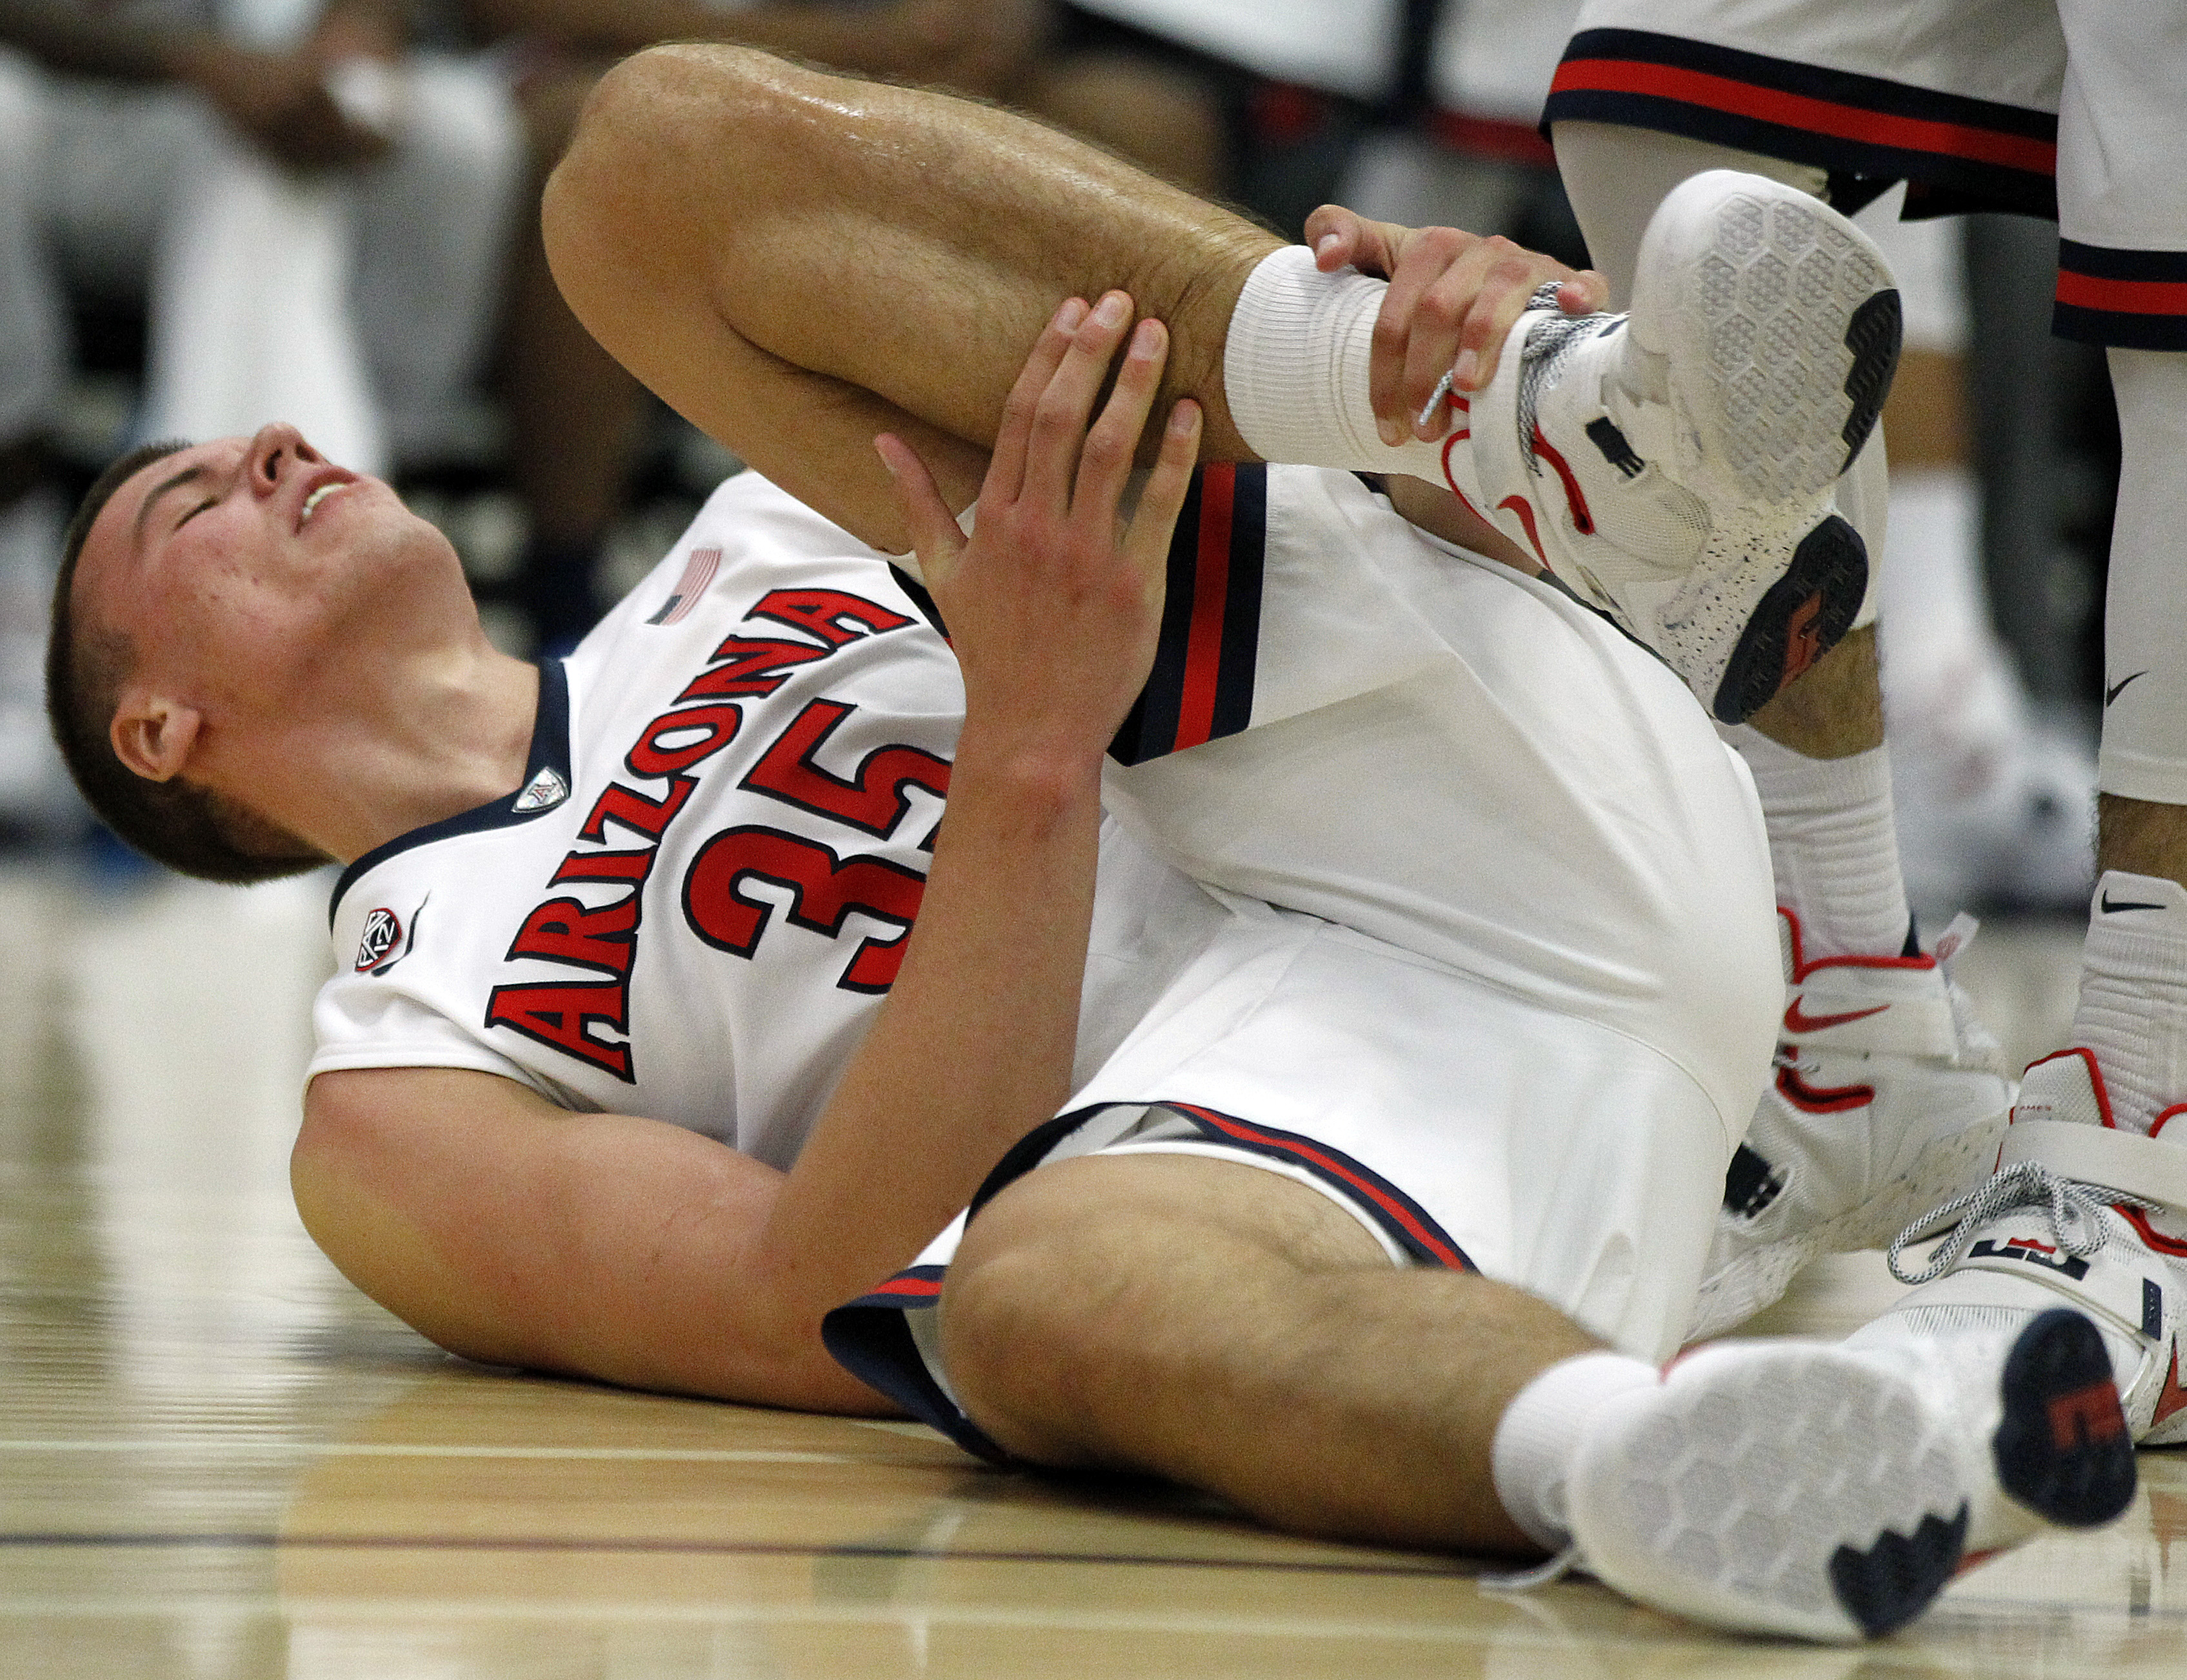 Arizona center Kaleb Tarczewski (35) reacts after an injury during the second half of an NCAA college basketball game against Santa Clara in the quarterfinals of the Wooden Legacy tournament in Fullerton, Calif., Thursday, Nov. 26, 2015. Arizona won 75-73